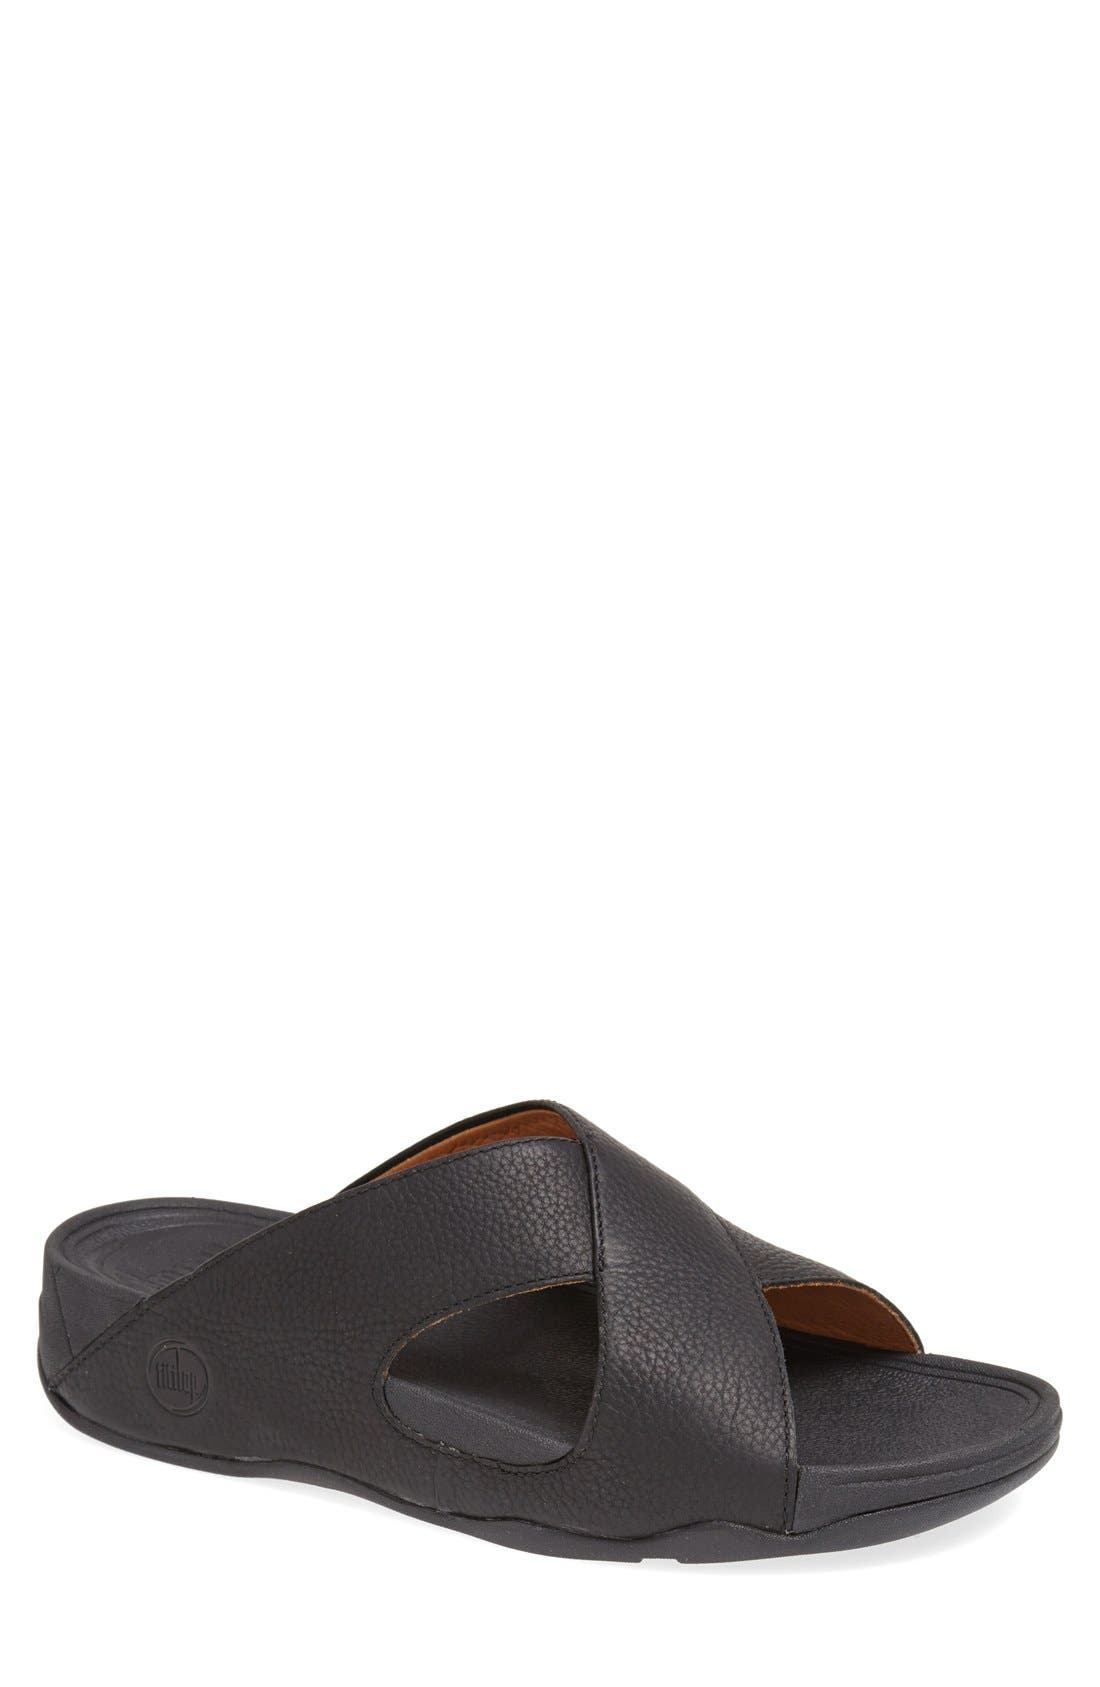 FITFLOP 'Xosa™' Leather Slide Sandal